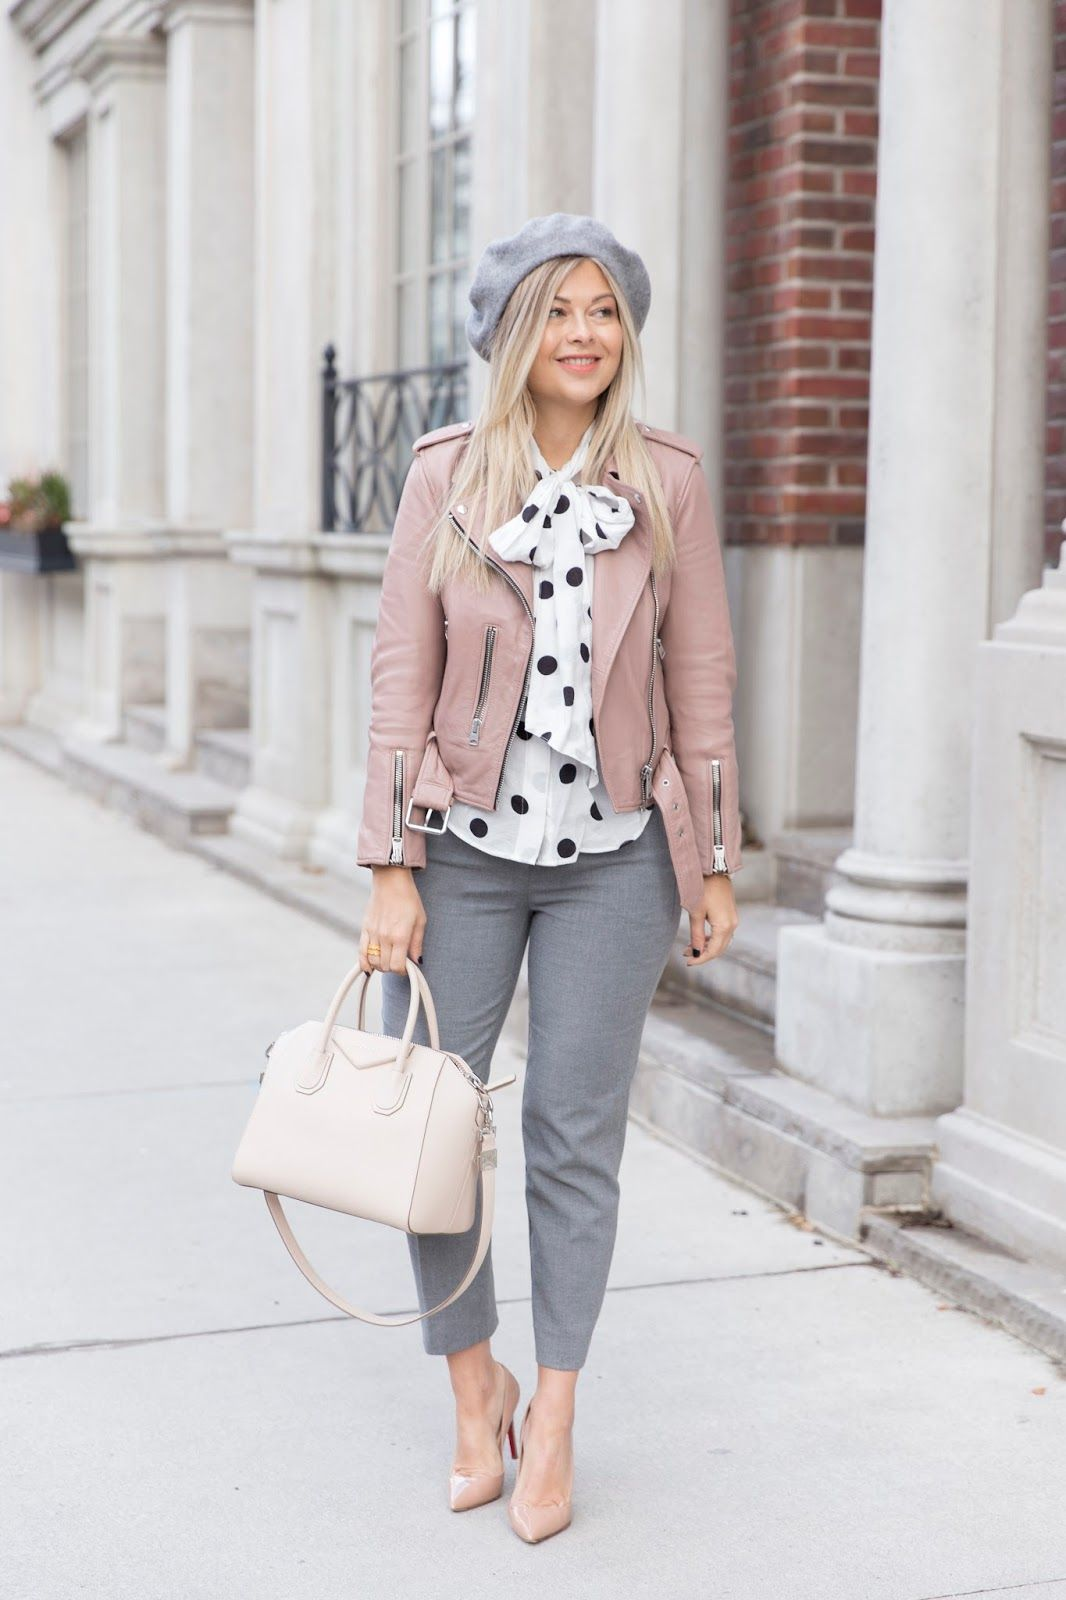 4f830107044f Autumn / fall / spring outfit dressing - blush pink and grey with black and  white polka dots - ways to wear a beret